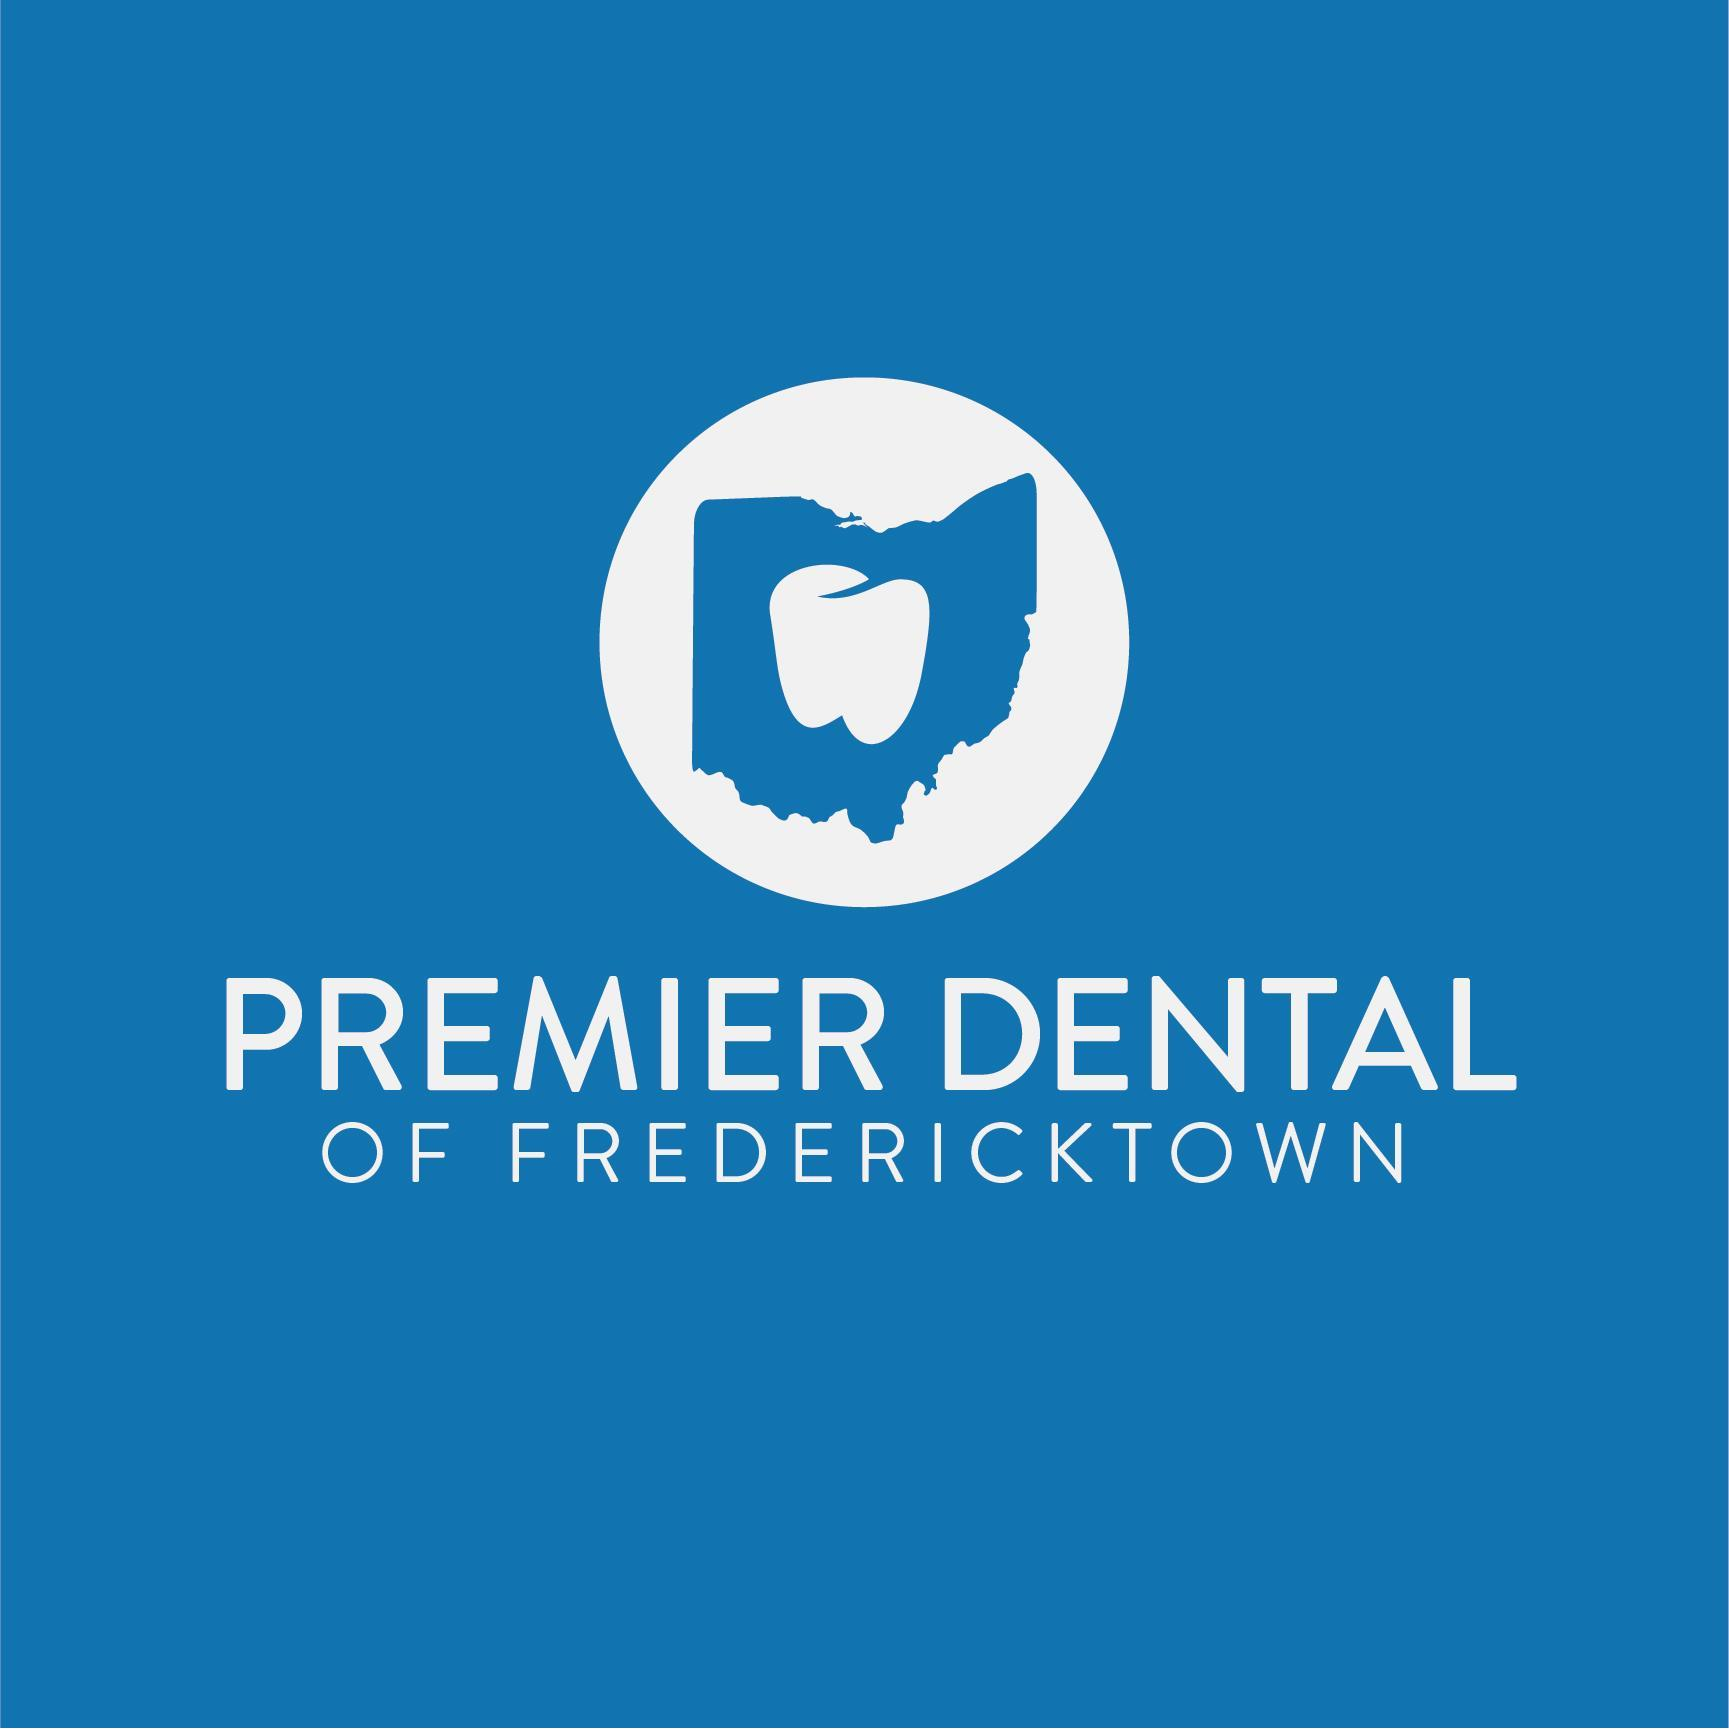 fff38f86d957 Premier Dental of Fredericktown